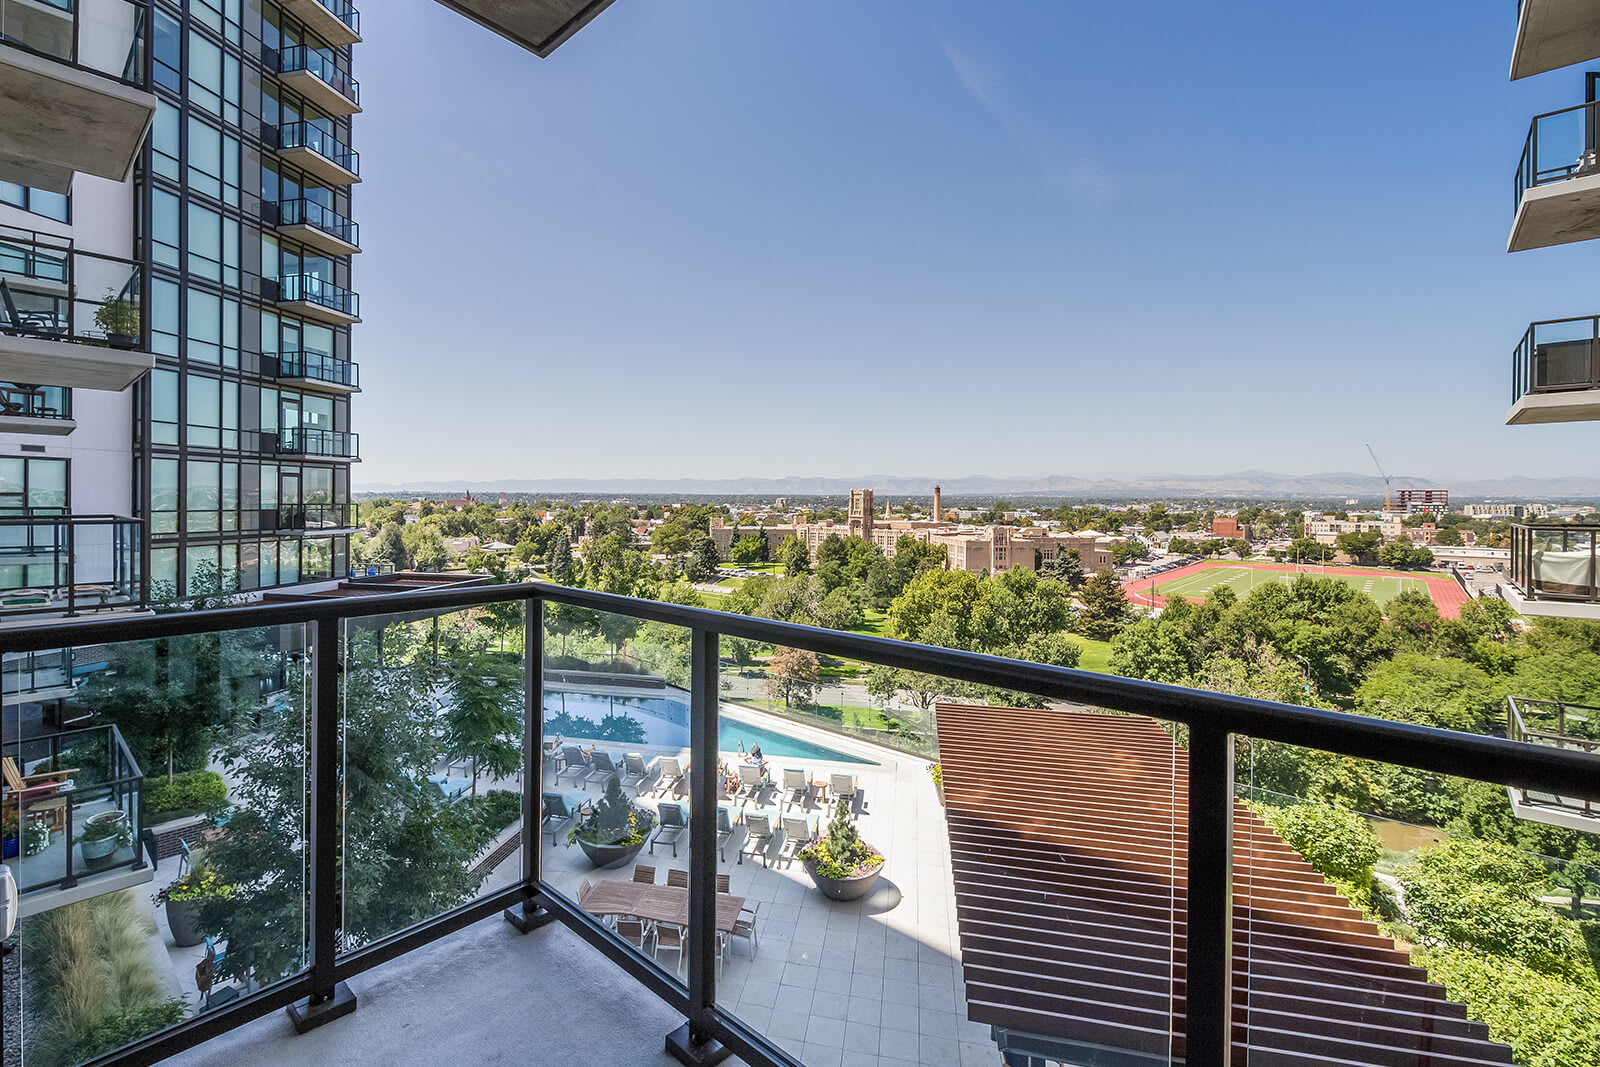 Private Balcony With Magnificent View at 1000 Speer by Windsor, 80204, CO